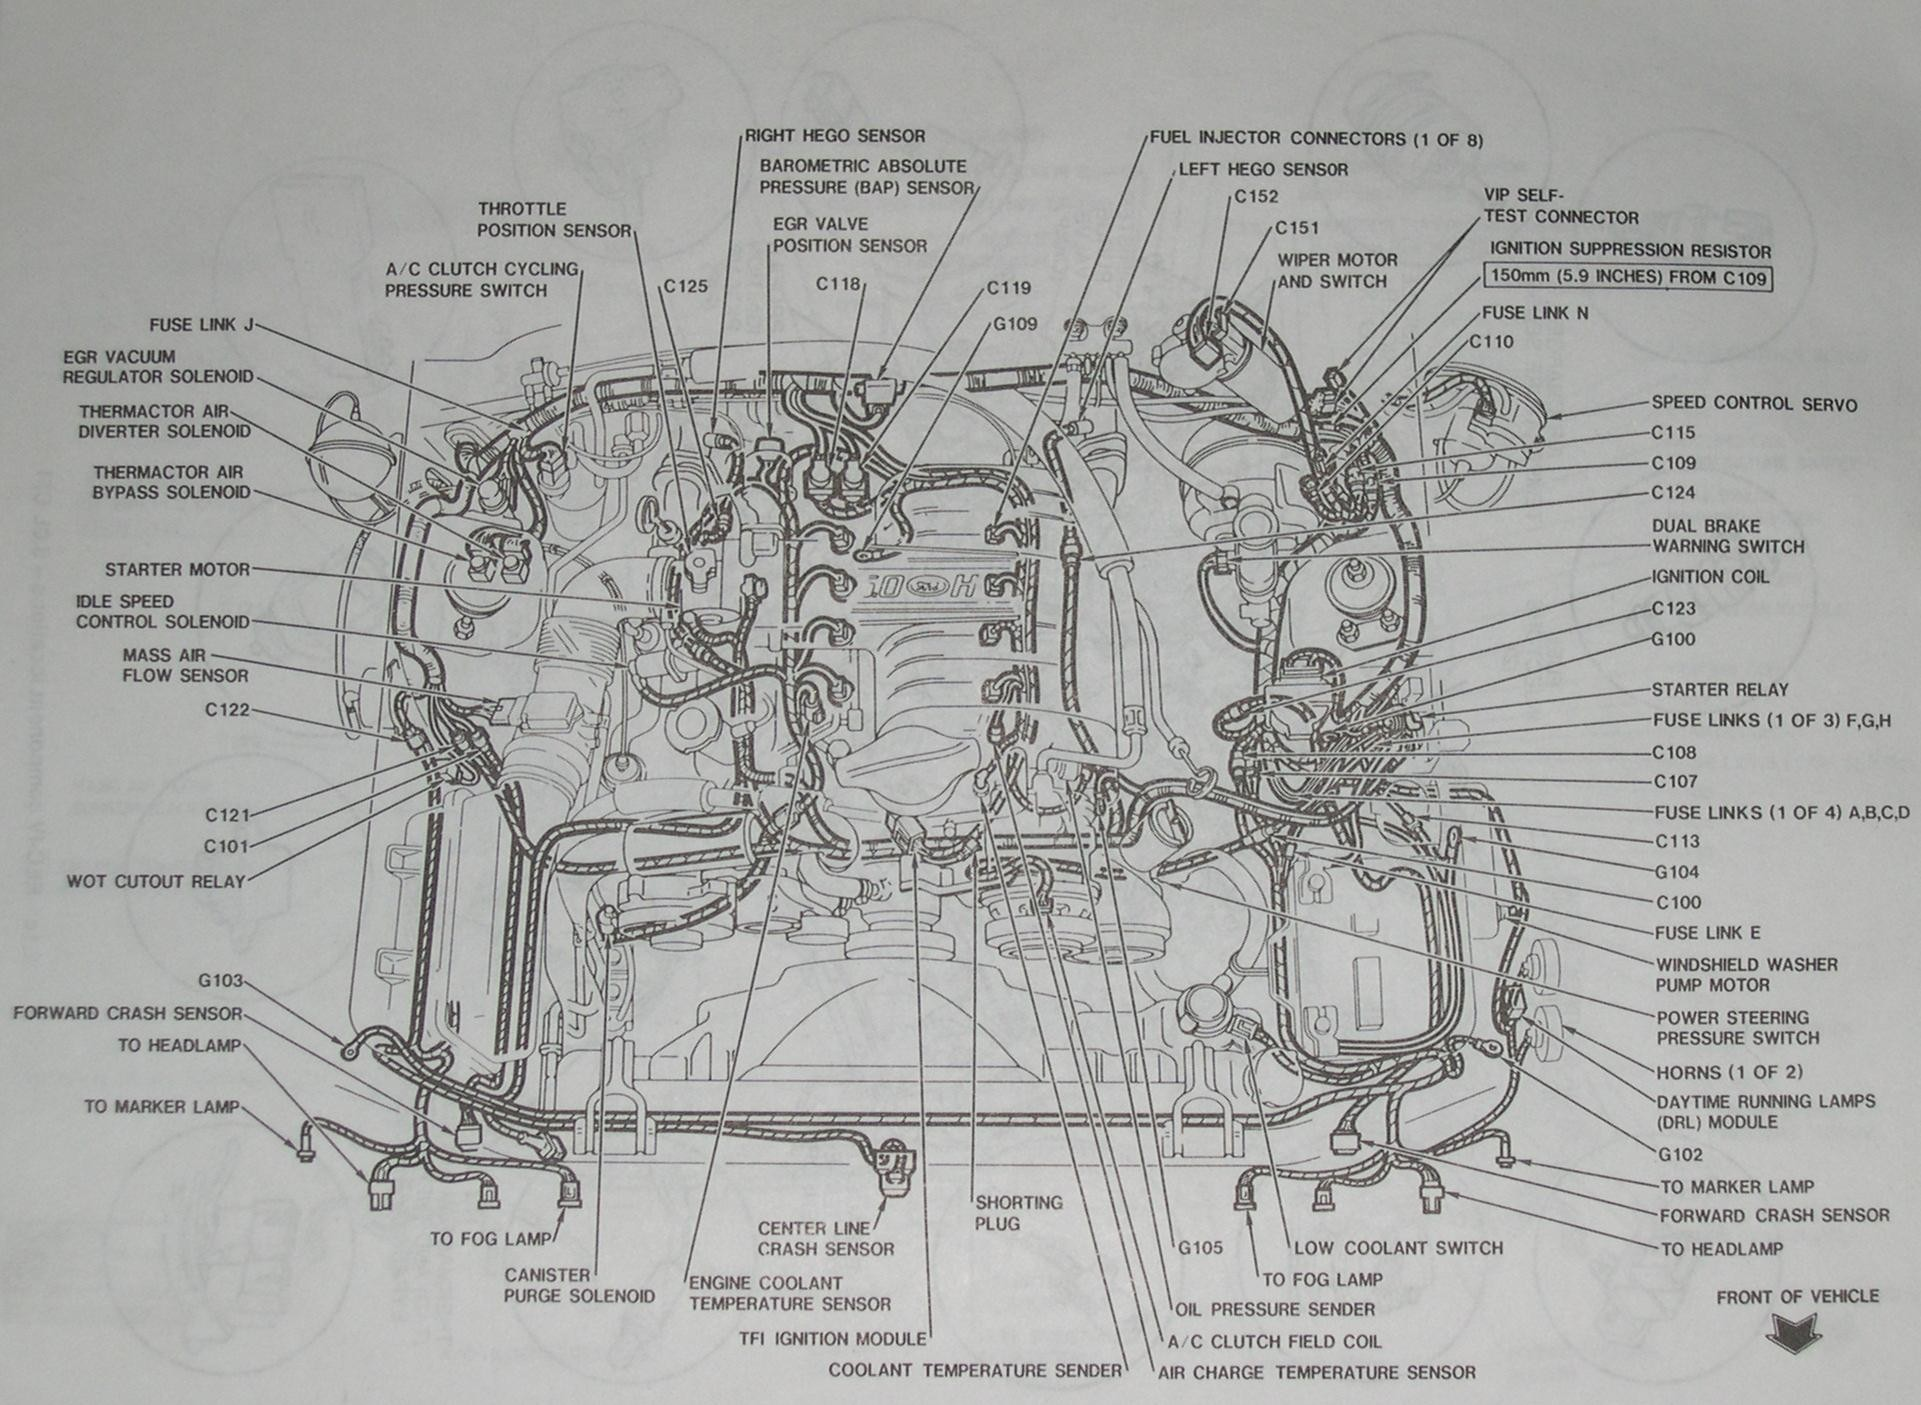 2005 Mustang Gt Engine Diagram - Basic Wiring Diagram •